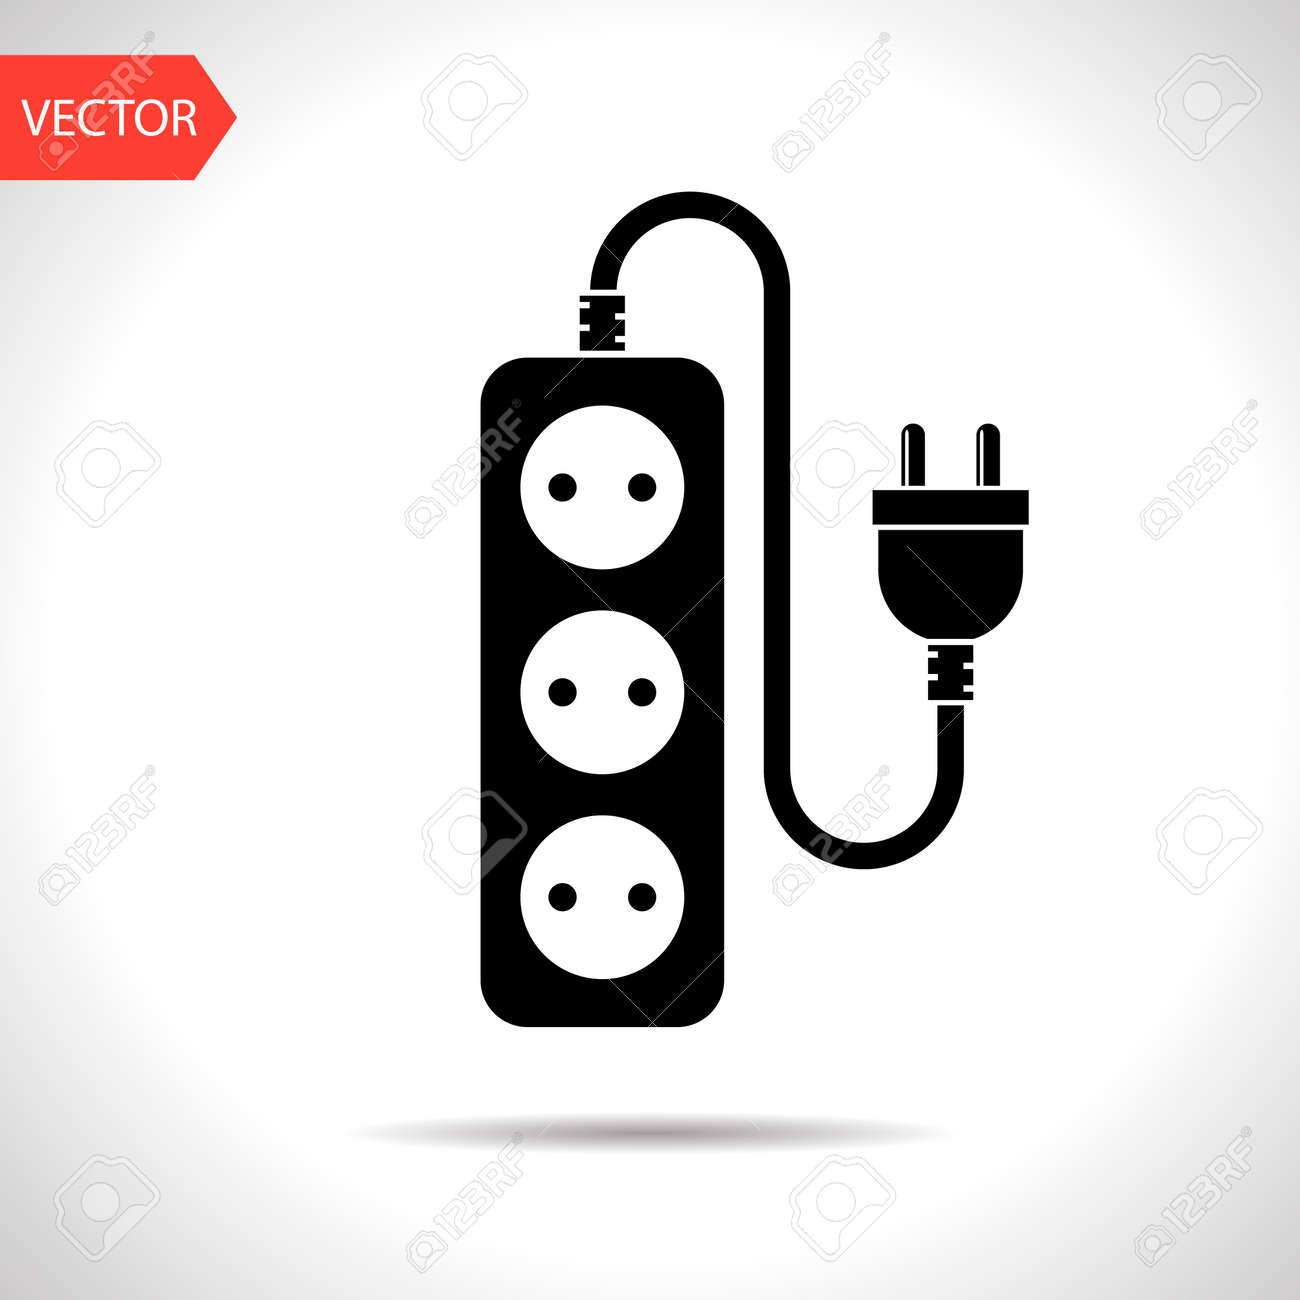 438 Outlets Power Strip Cliparts, Stock Vector And Royalty Free ...